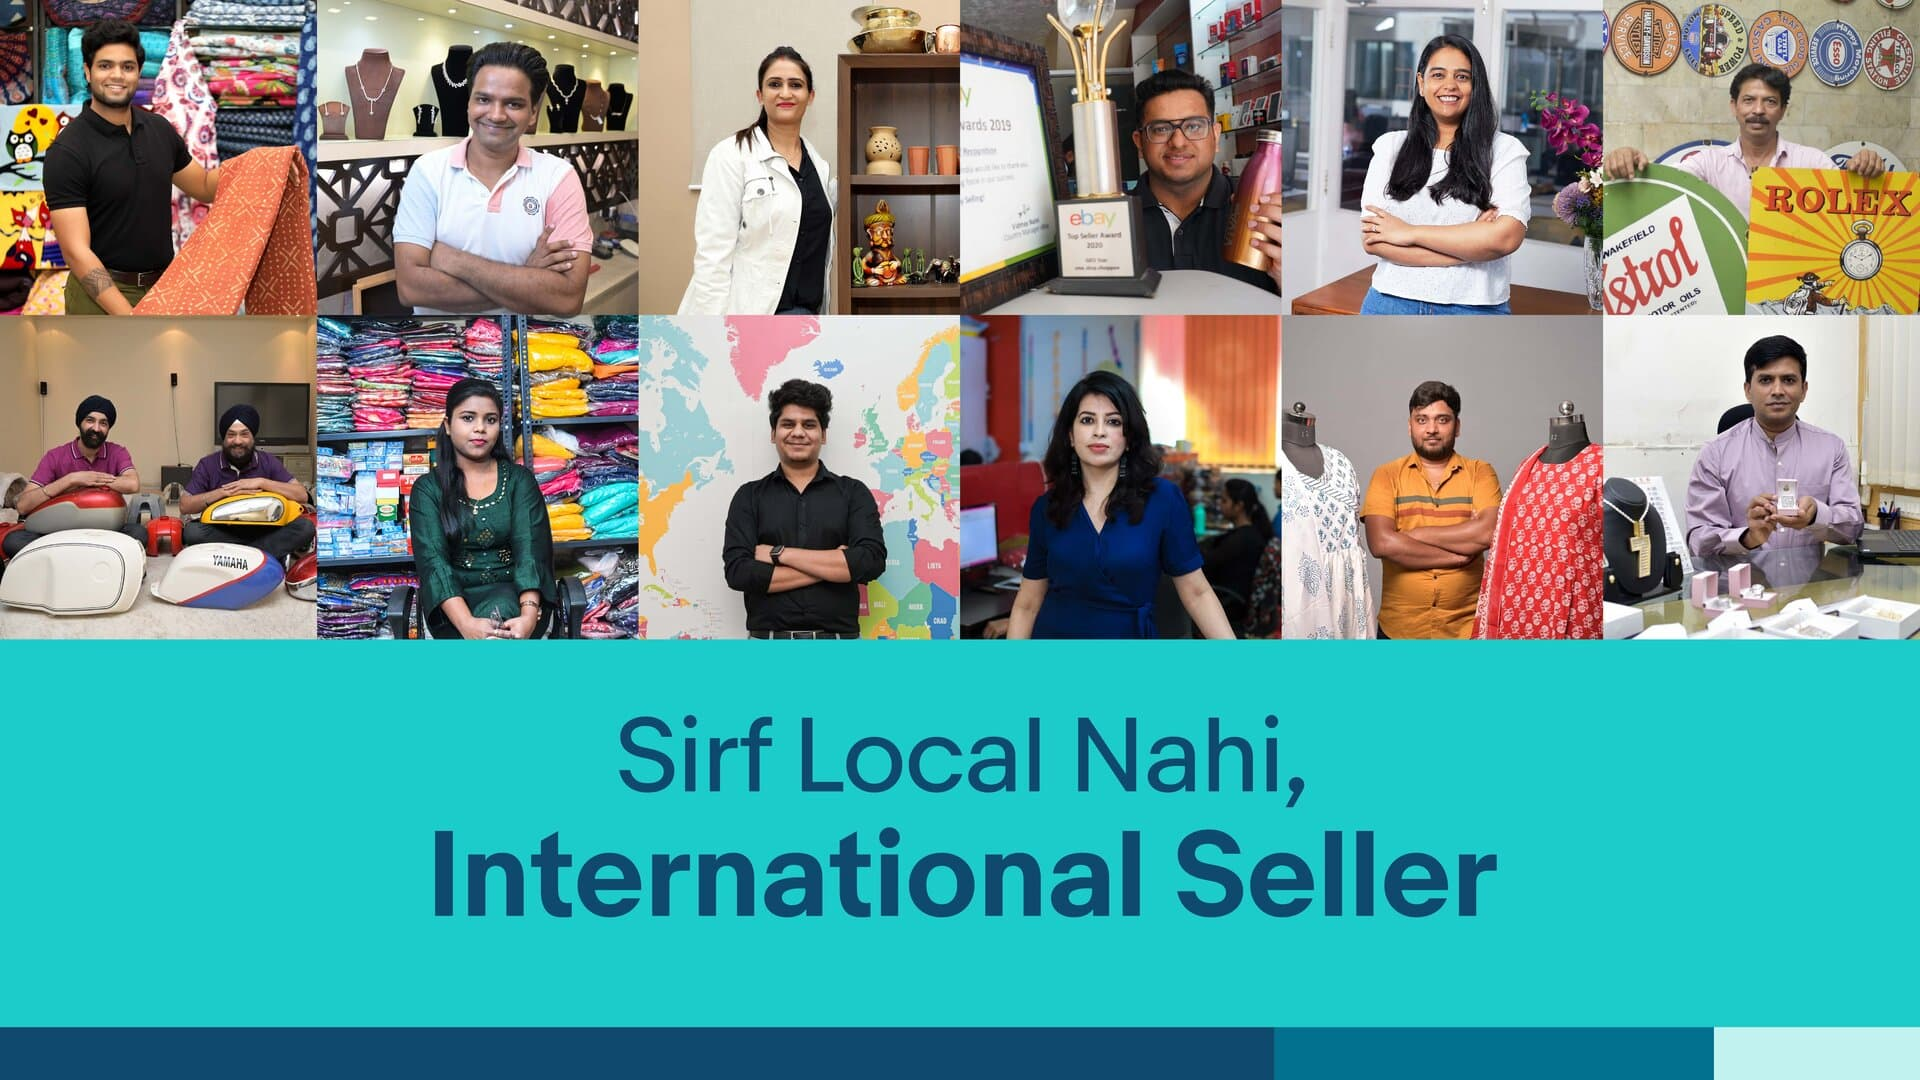 eBay launches 'Sirf Local Nahi, International Seller' campaign